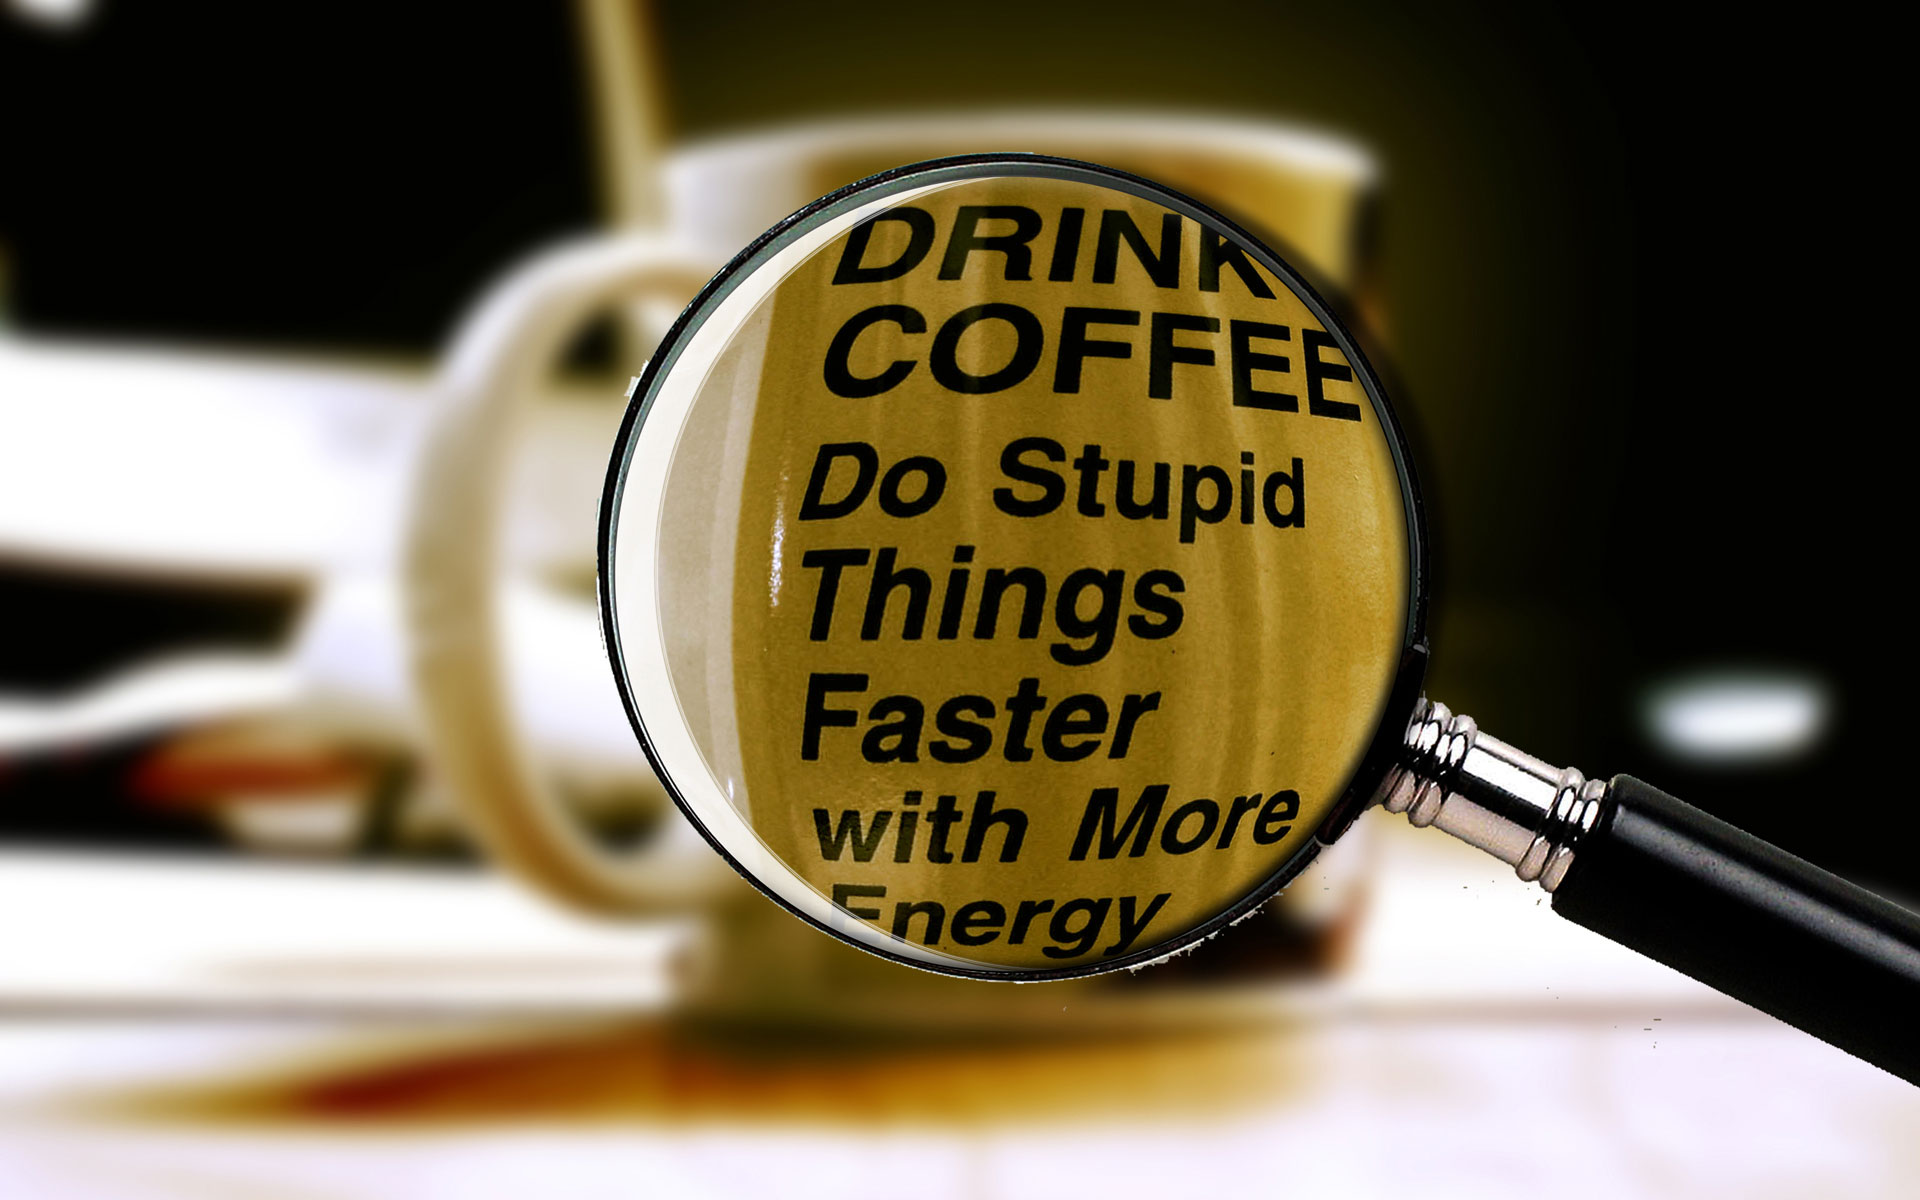 Drink Coffee Do Stupid Things Faster With More Energy.